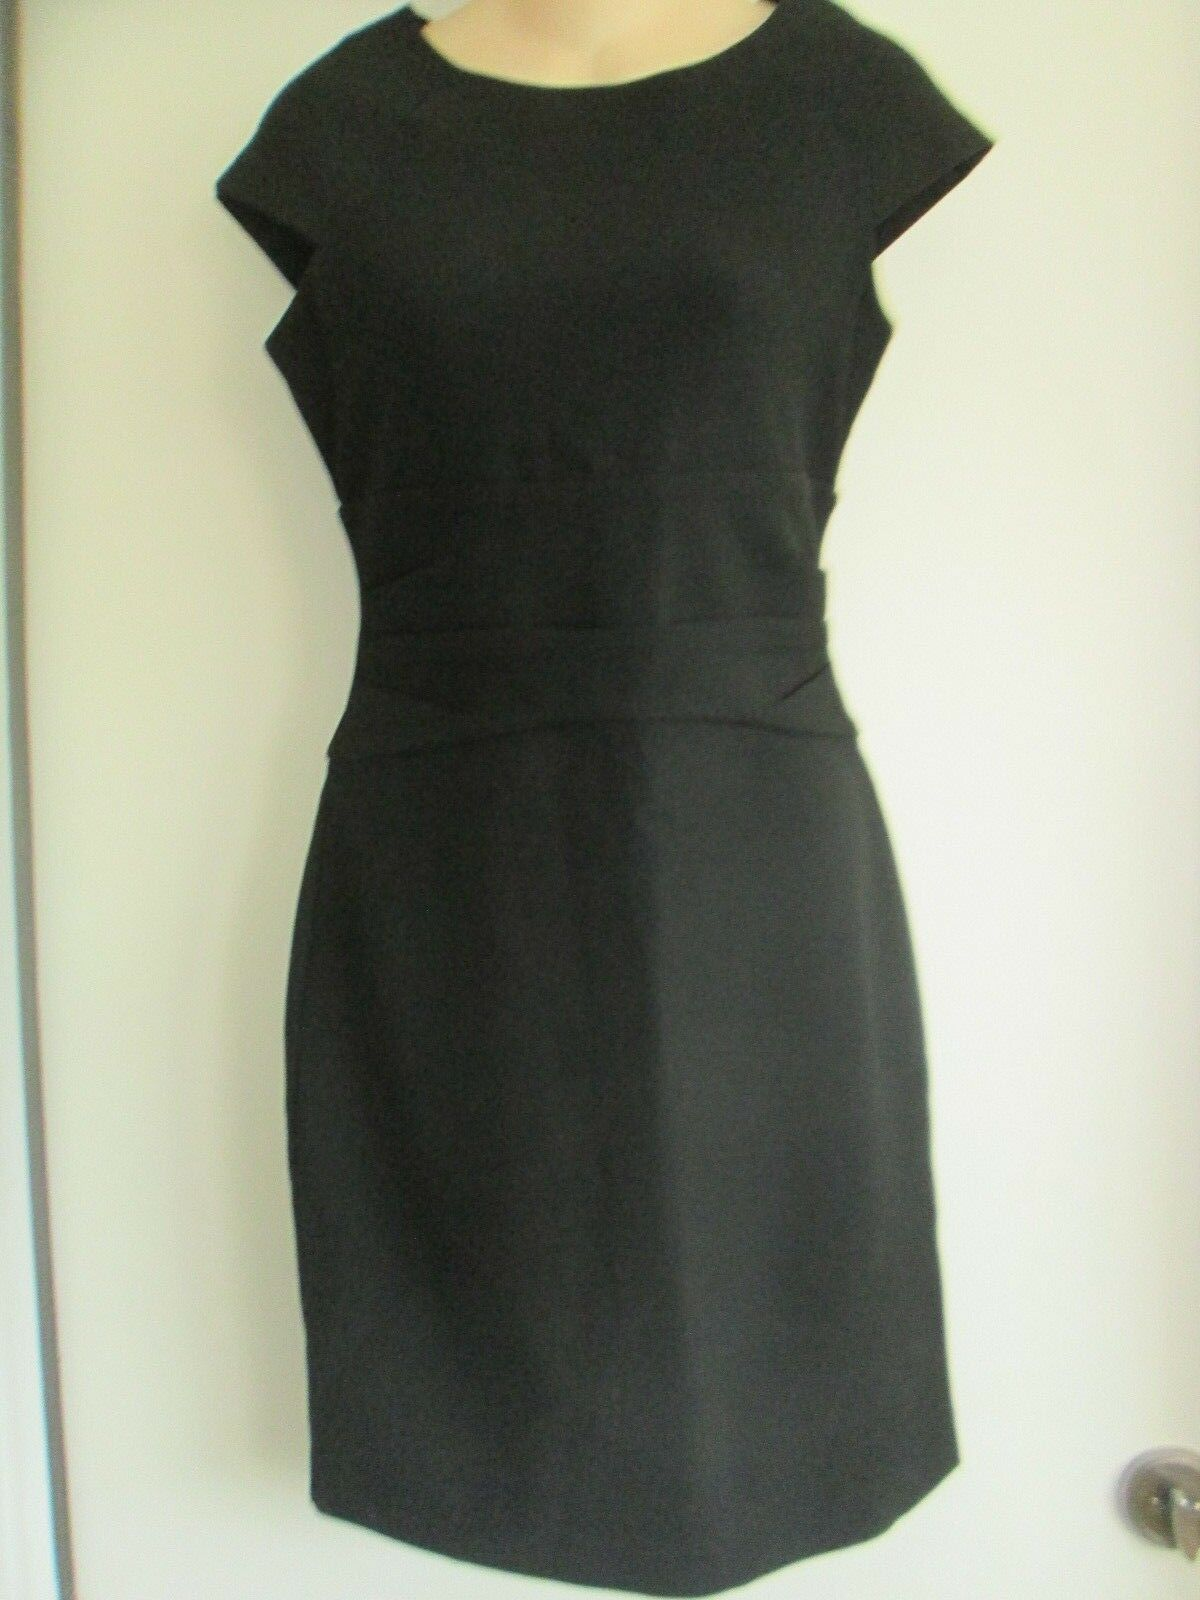 DIANE VON FURSTENBERG Cap Sleeve Sheath Dress w Full Back Zipper schwarz sz 4 NEW